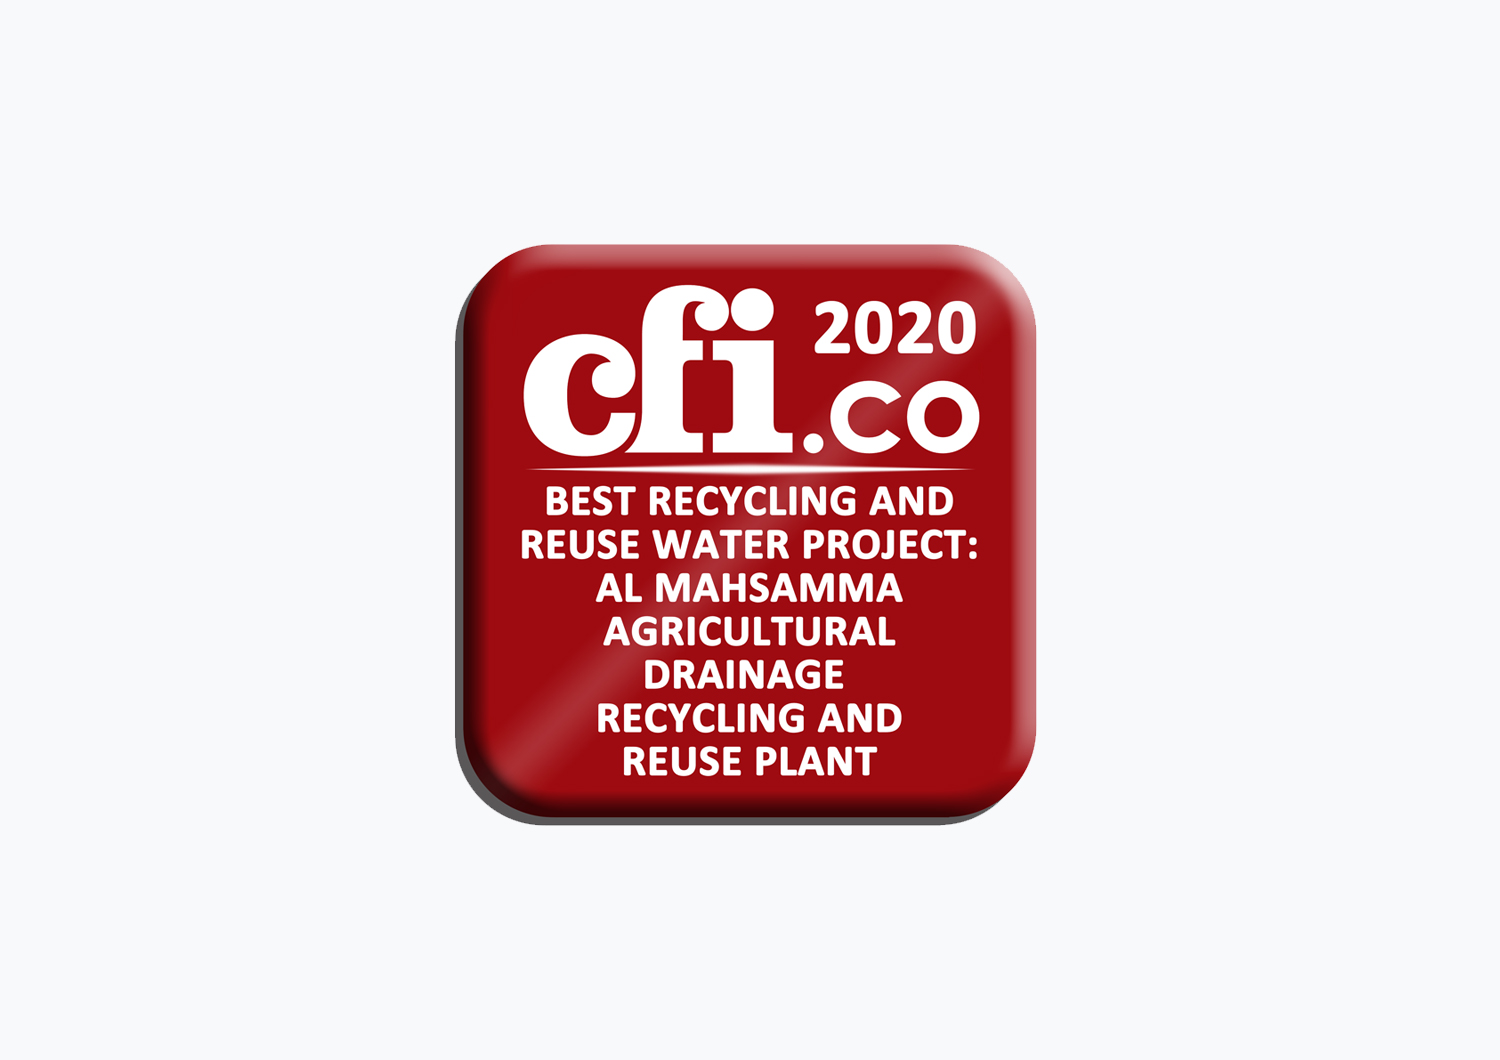 Al Mahsamma agricultural drainage treatment, recycling and reuse plant awarded the 'Best Recycling and Reuse Water Project Global 2020' by Capital Finance International